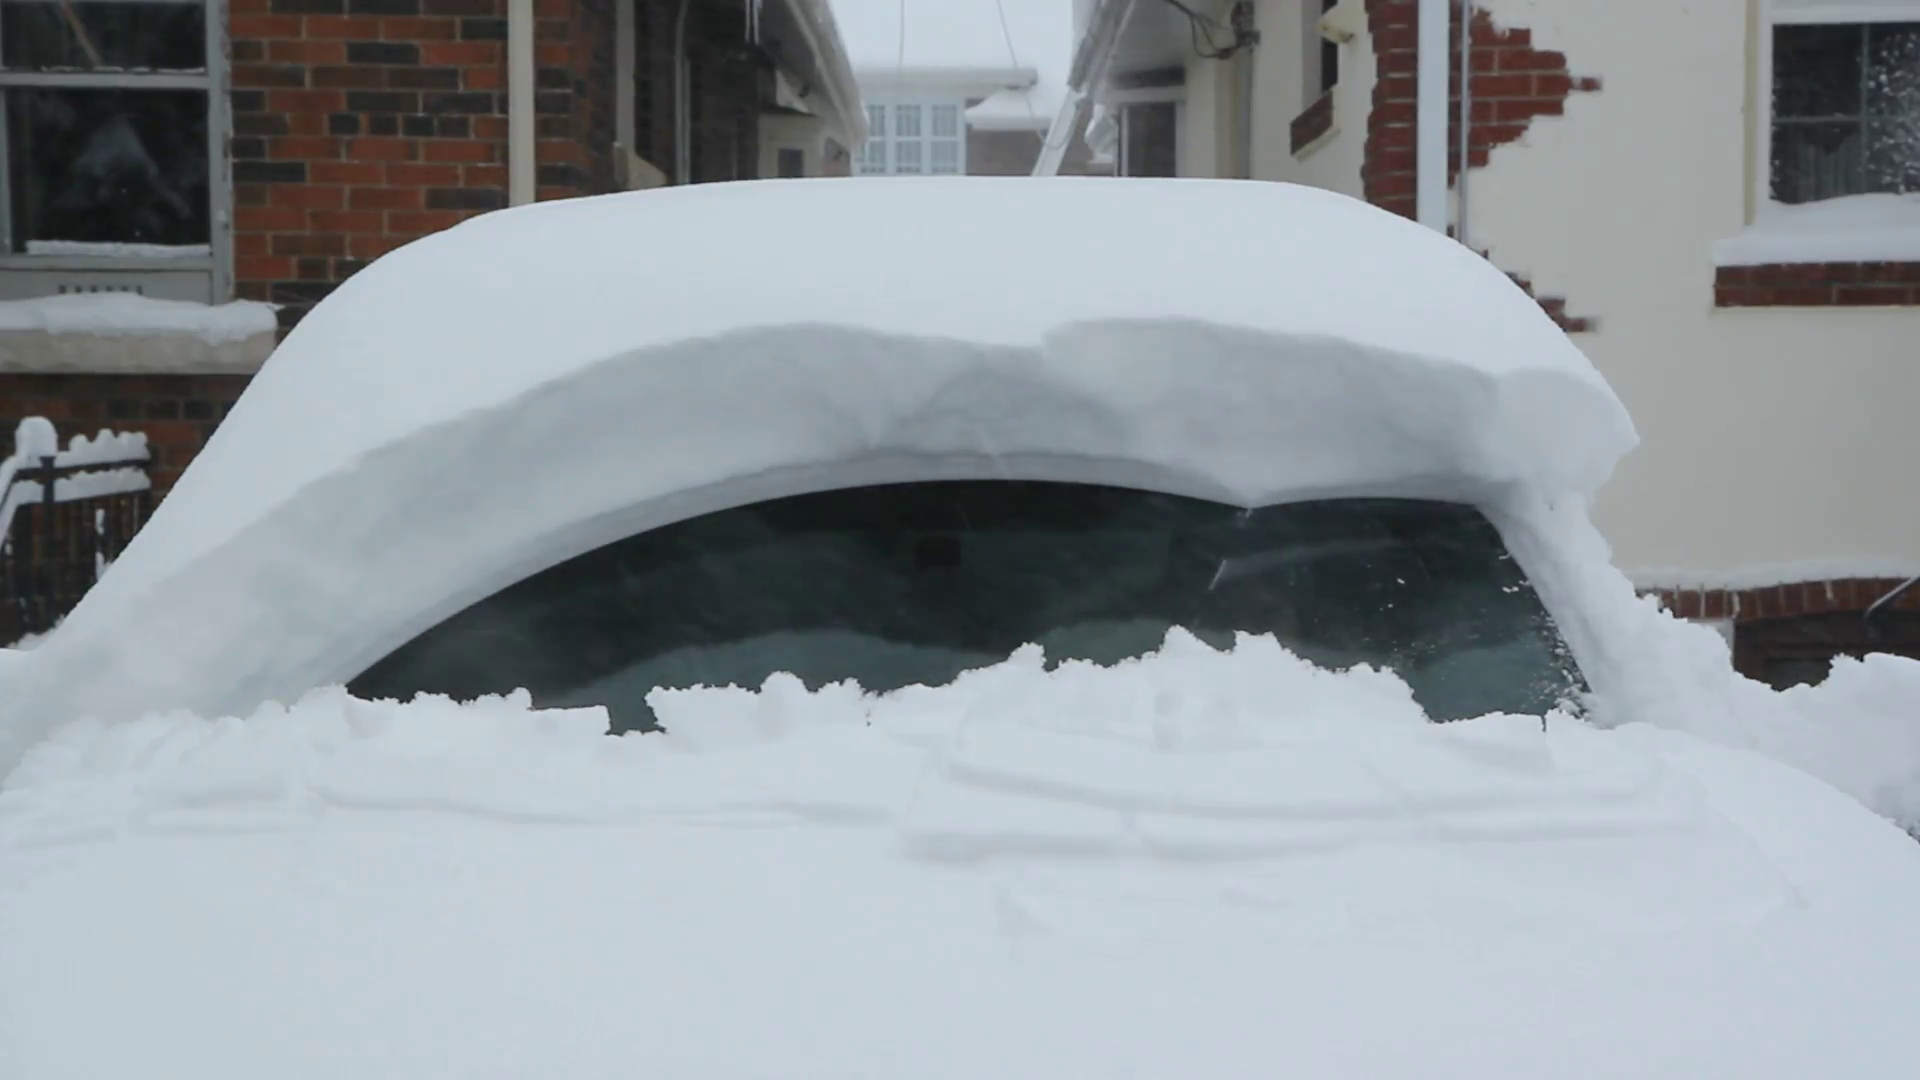 Starting a snow covered car. Wipers working to clear thick snow ...